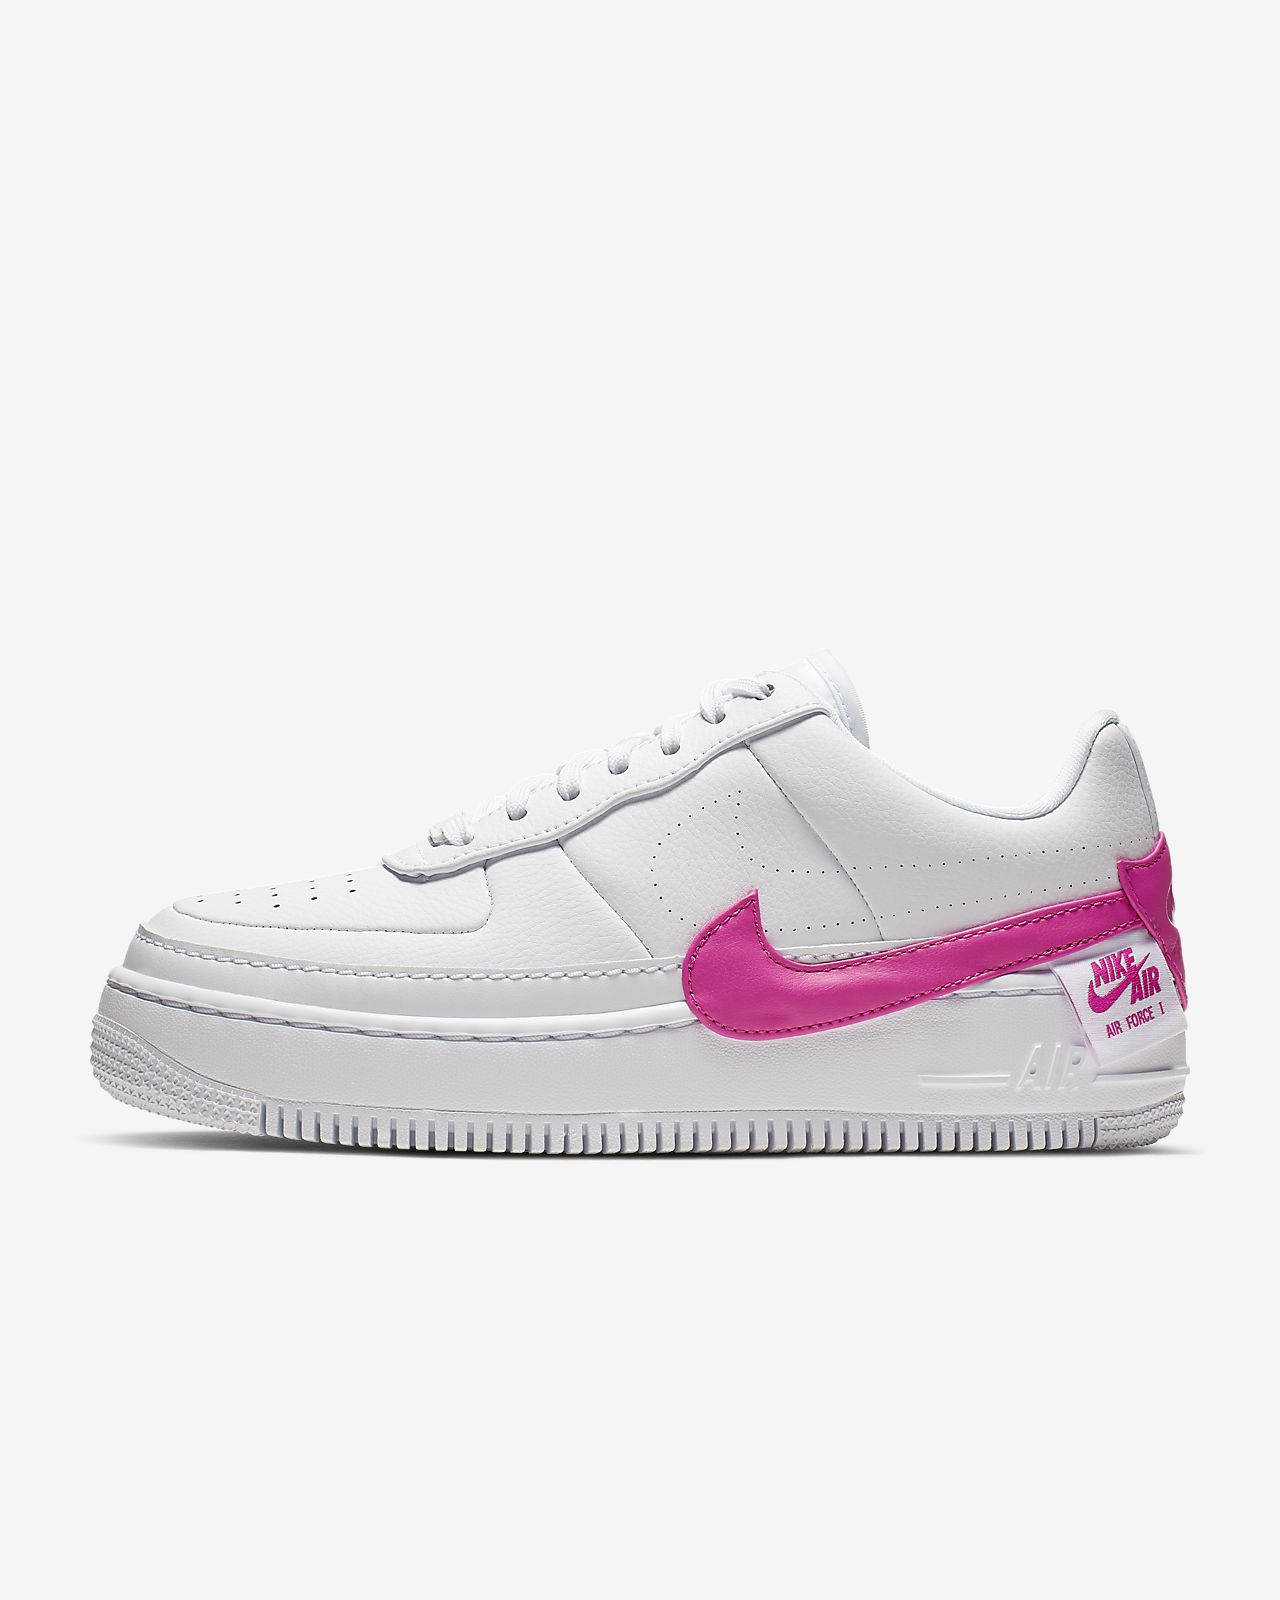 067c18c98f95 Nike Air Force 1 Jester XX Shoe. Nike.com